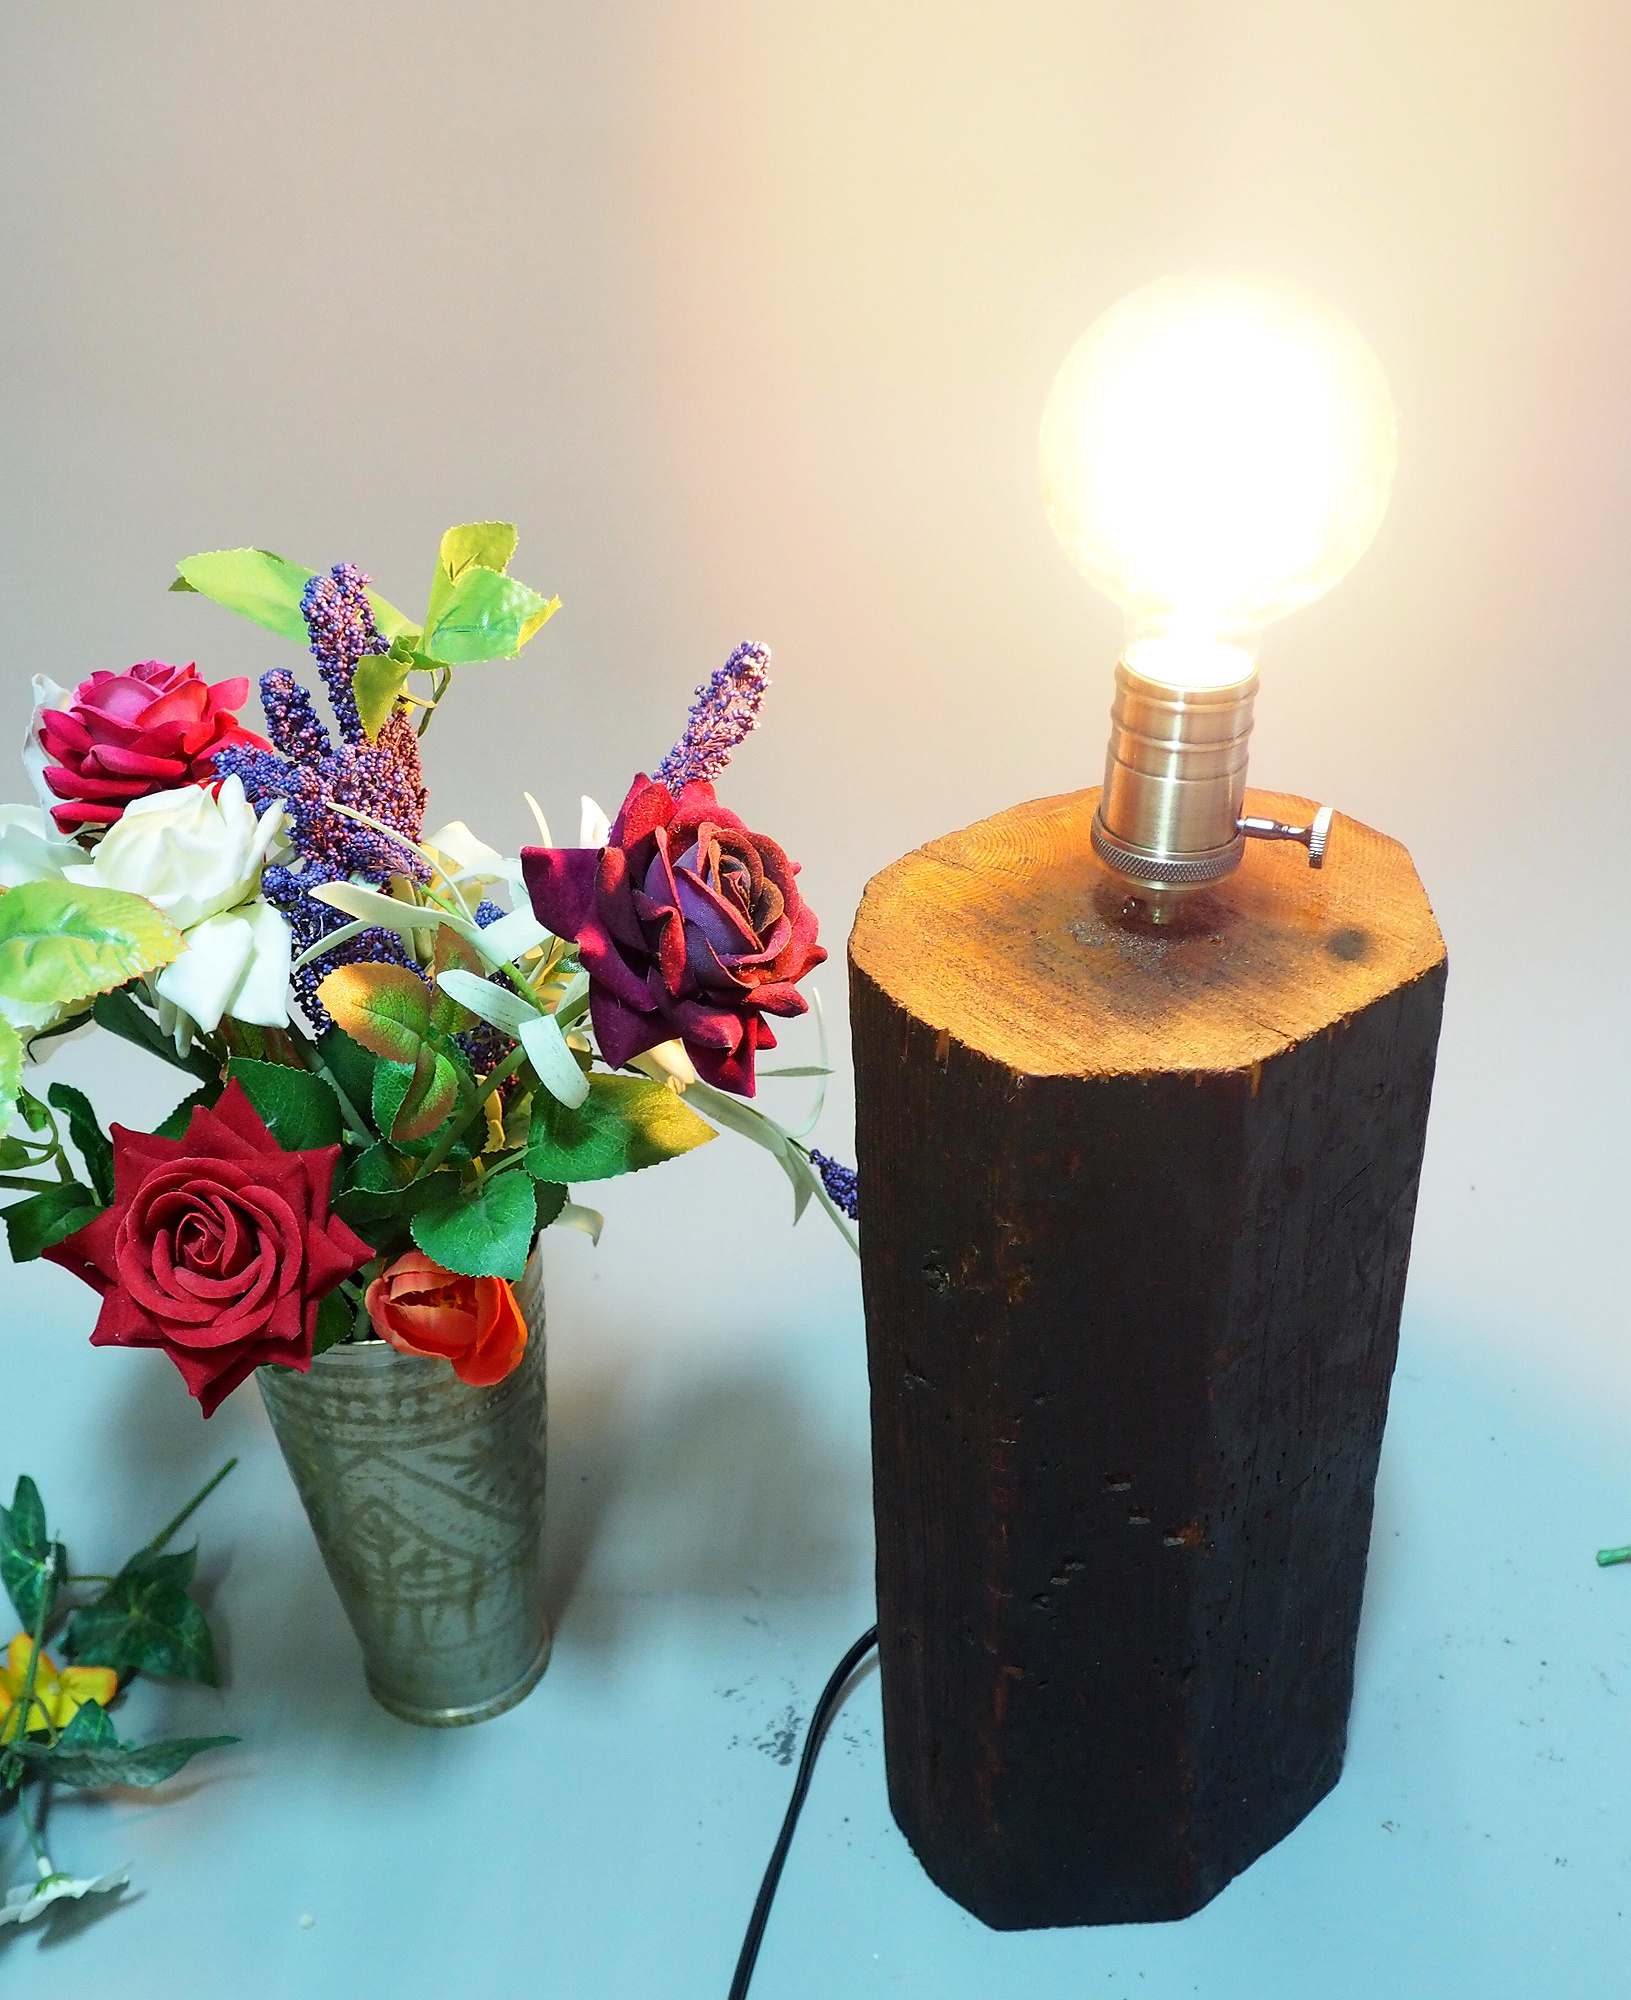 antique wooden table lamp lamp base from Nuristan Afghanistan Swat velly pakistan No:NU3